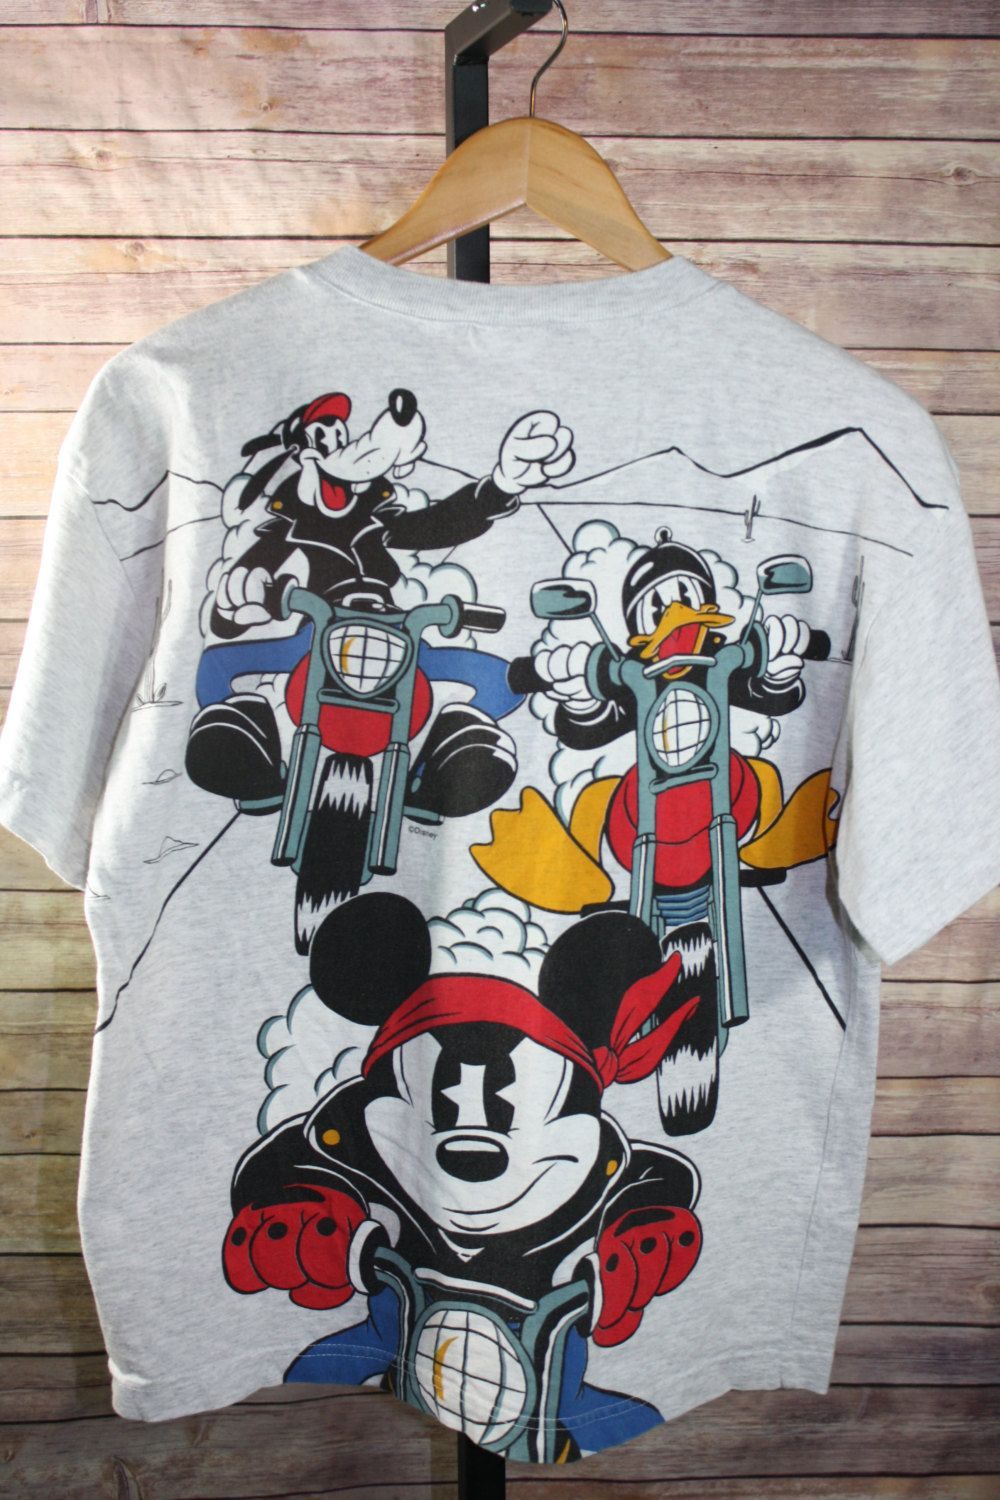 Motorcycle T-Shirt Youth XL Gray 1 4 Button Cotton Goofy Daffy Duck Mickey  by JuliaJaneVintage on Etsy 4c41072bd